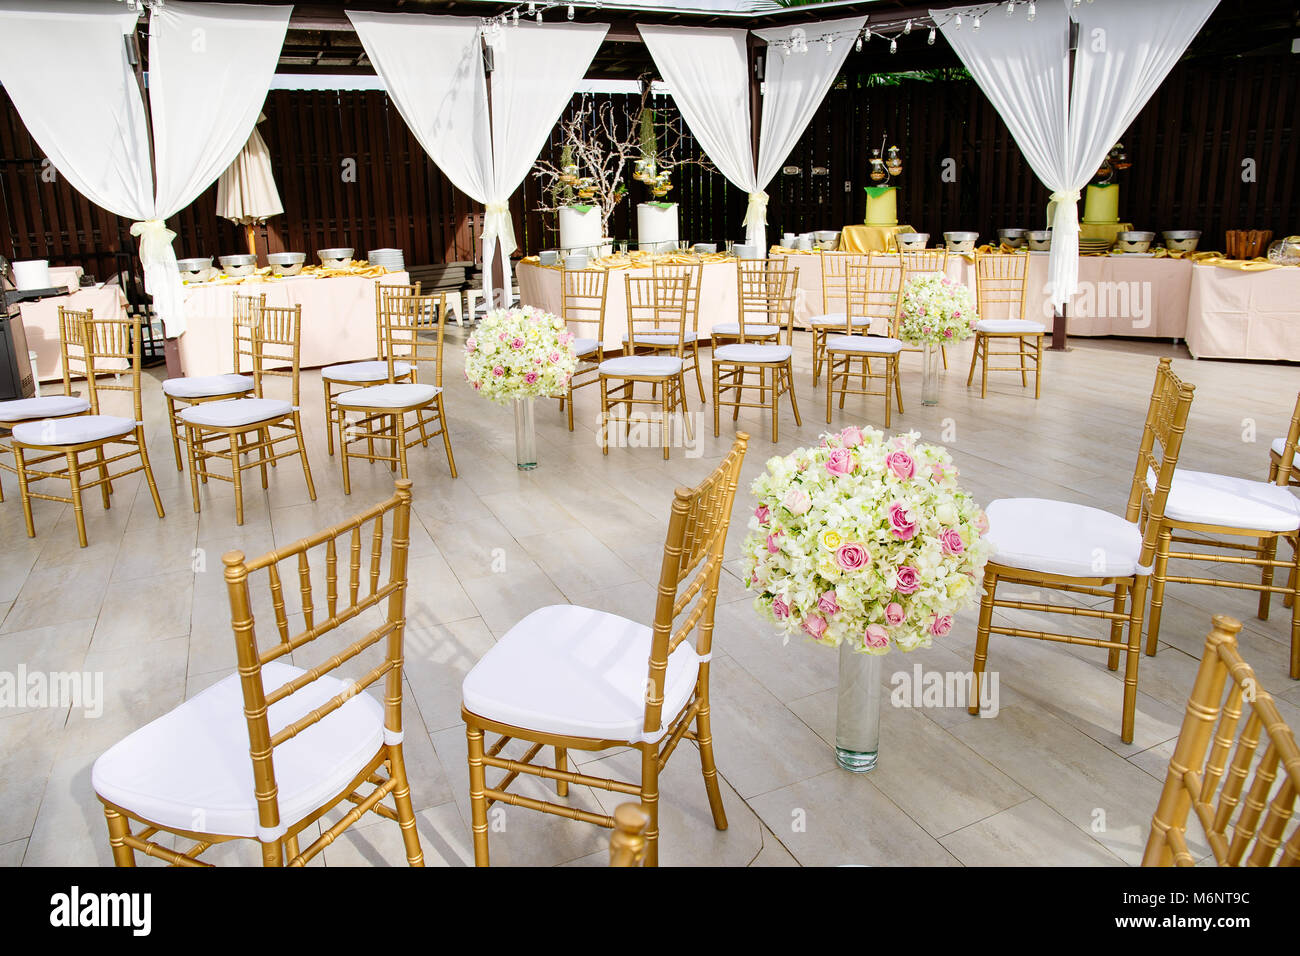 The Guest Chairs In Gold Color Theme With White Cover The Beach Stock Photo Alamy